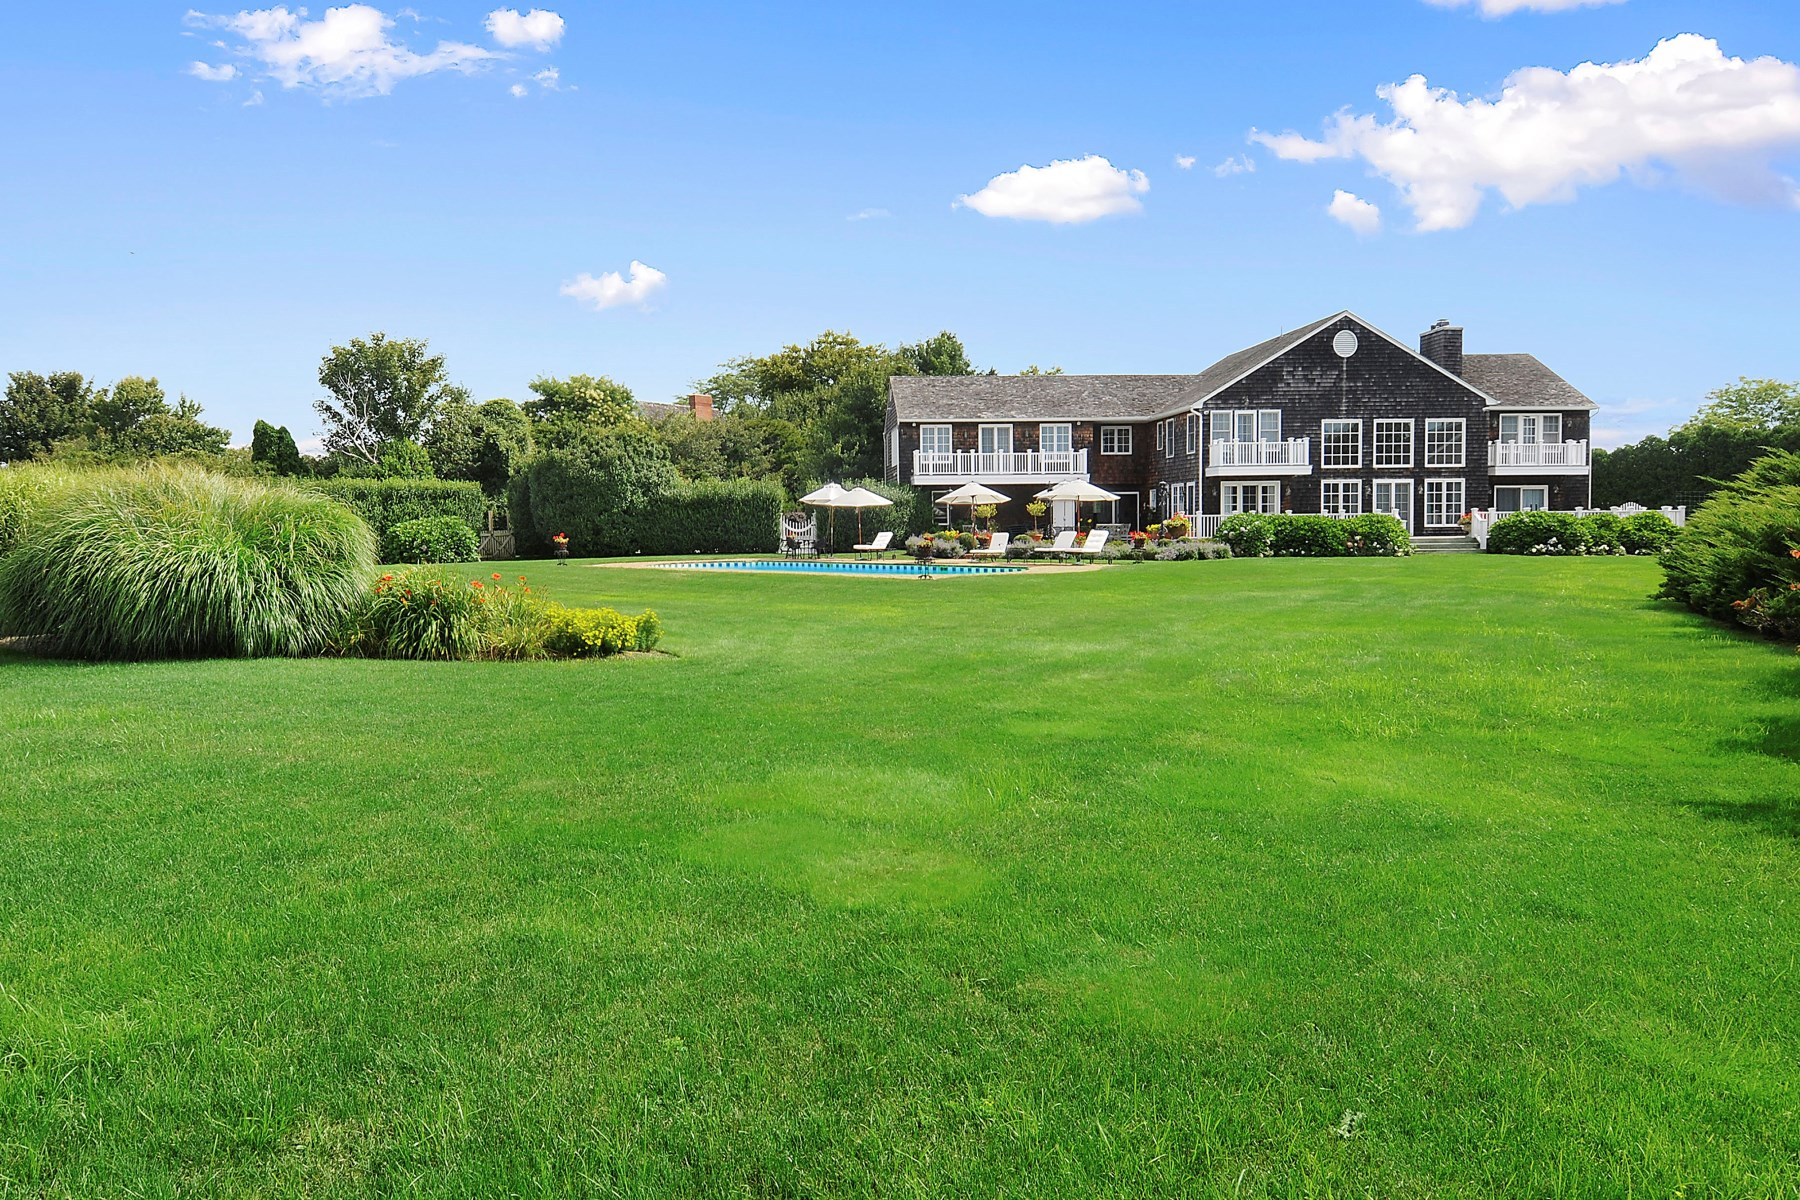 Moradia para Venda às Over 8 Acres, Close to the Ocean Bridgehampton South, Bridgehampton, Nova York 11932 Estados Unidos